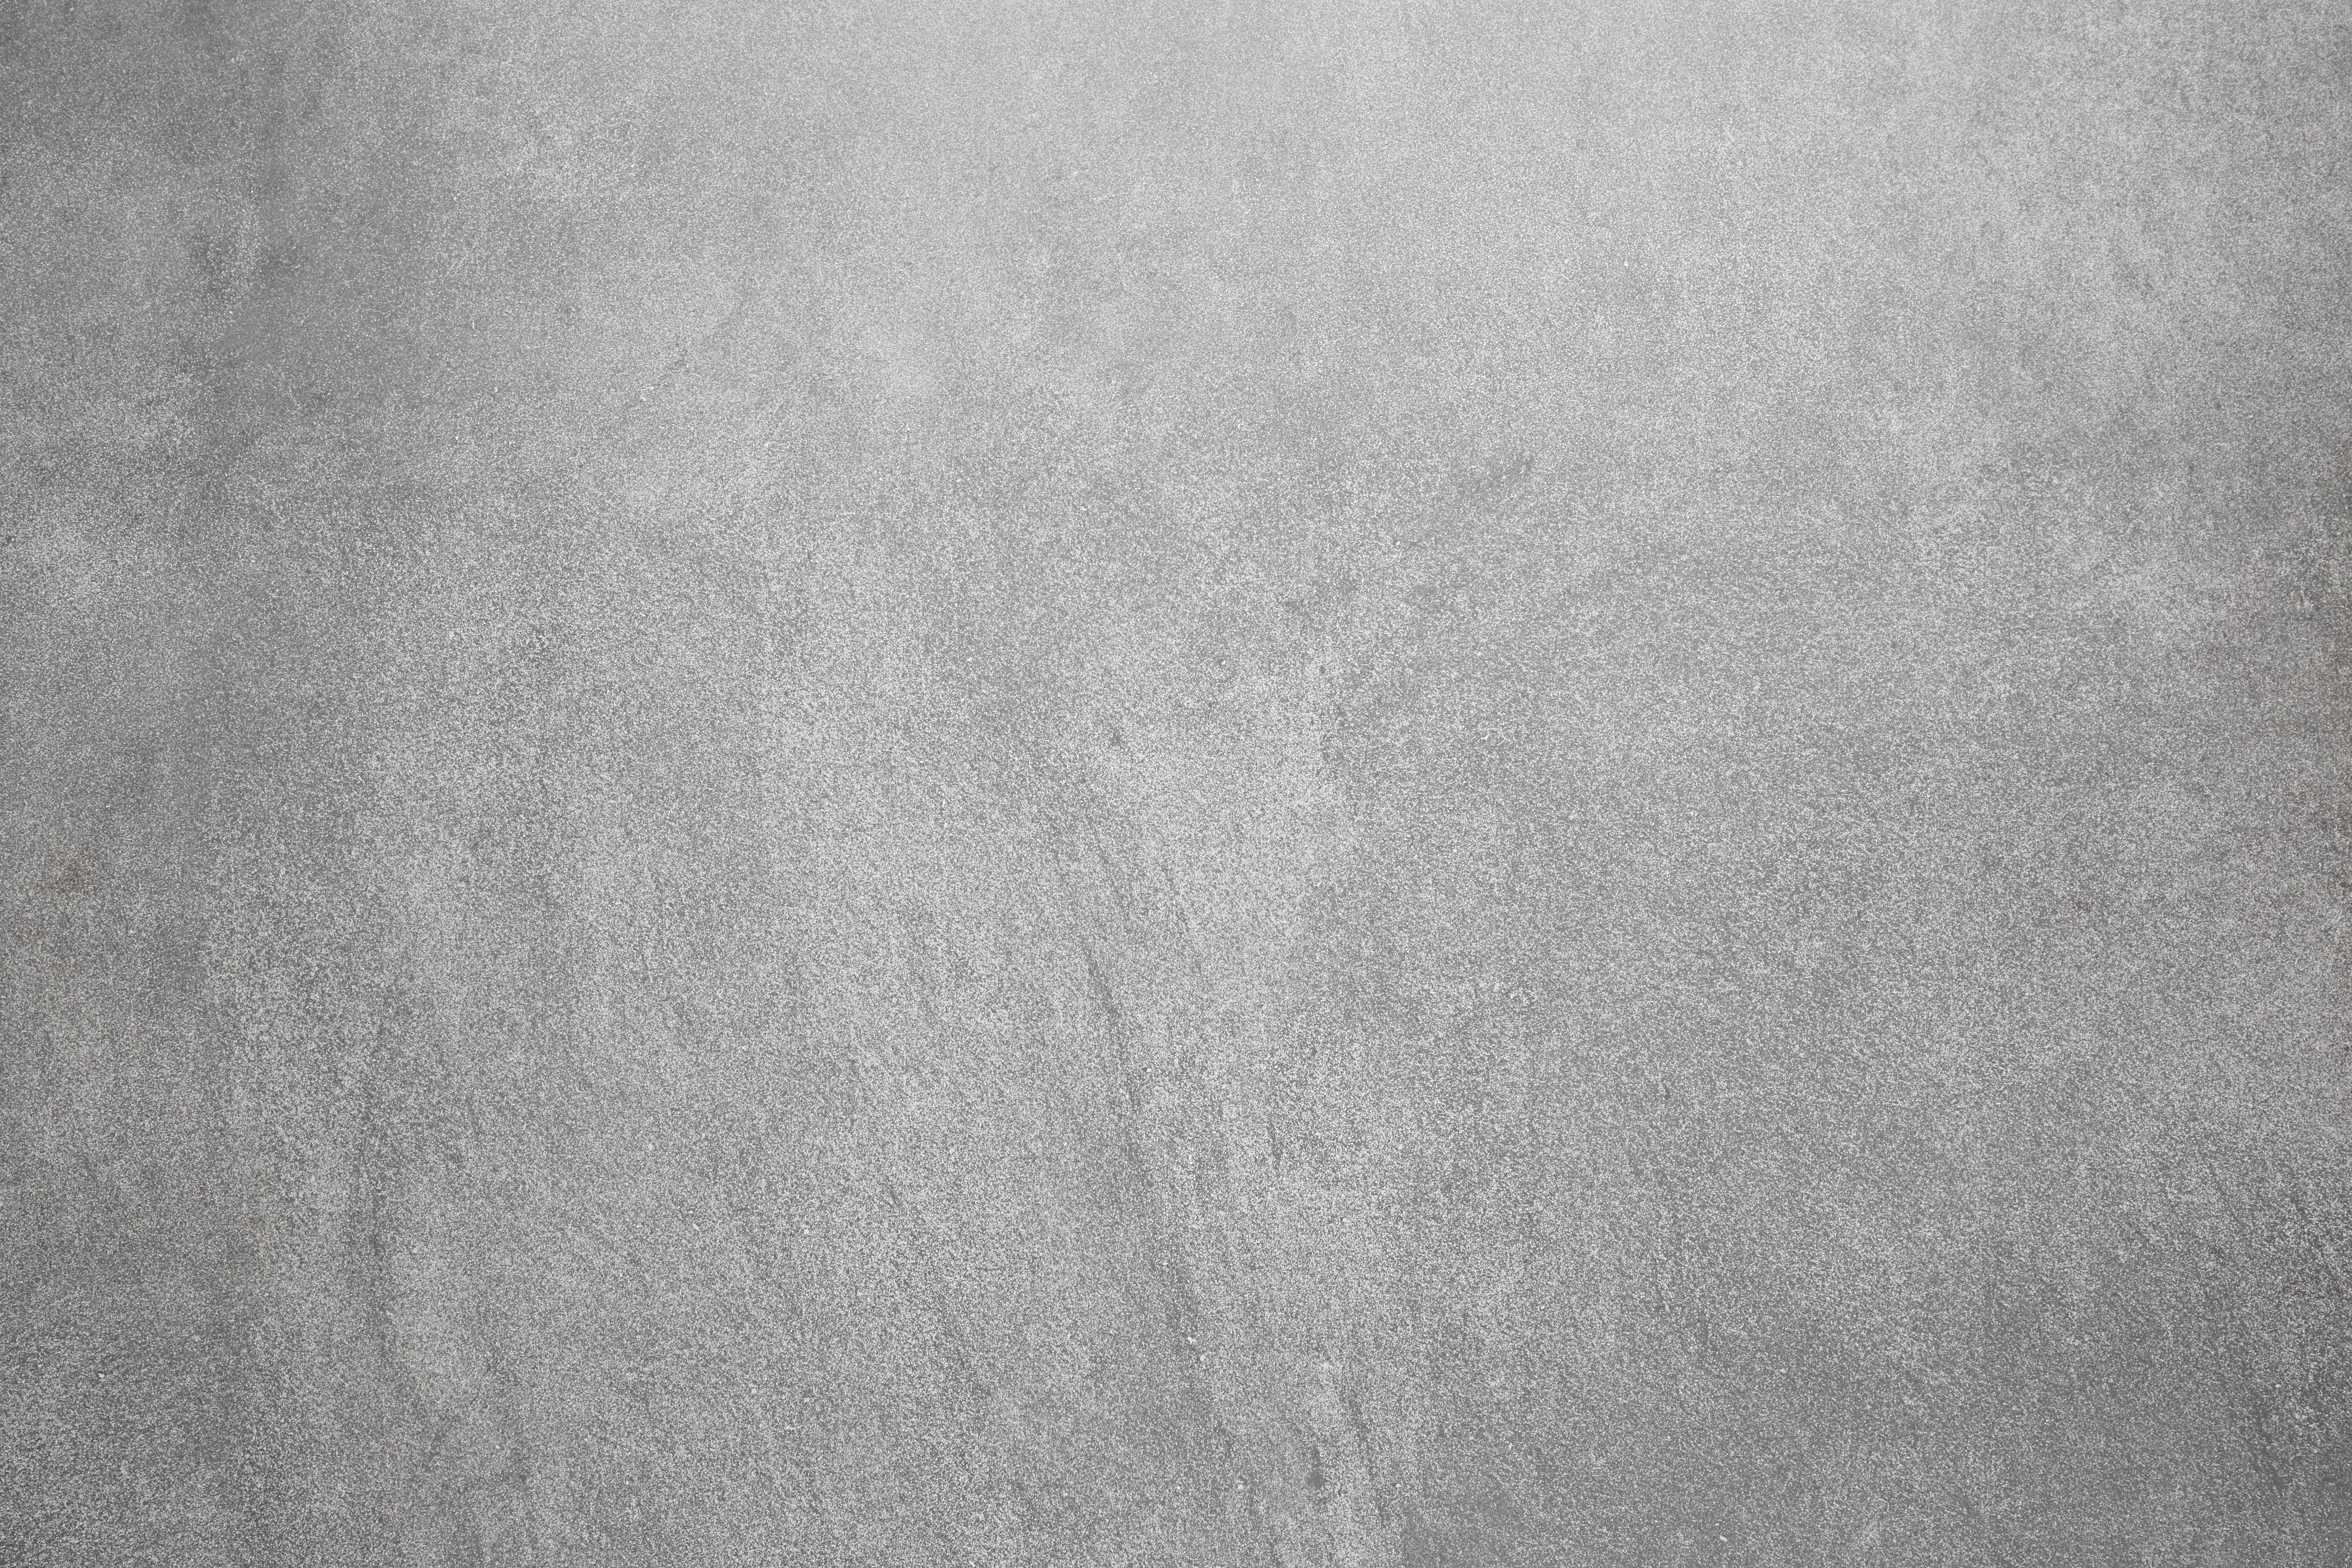 Shaun Daily Channel Meemee Tv Concrete Wall Texture Concrete Wall Textured Background